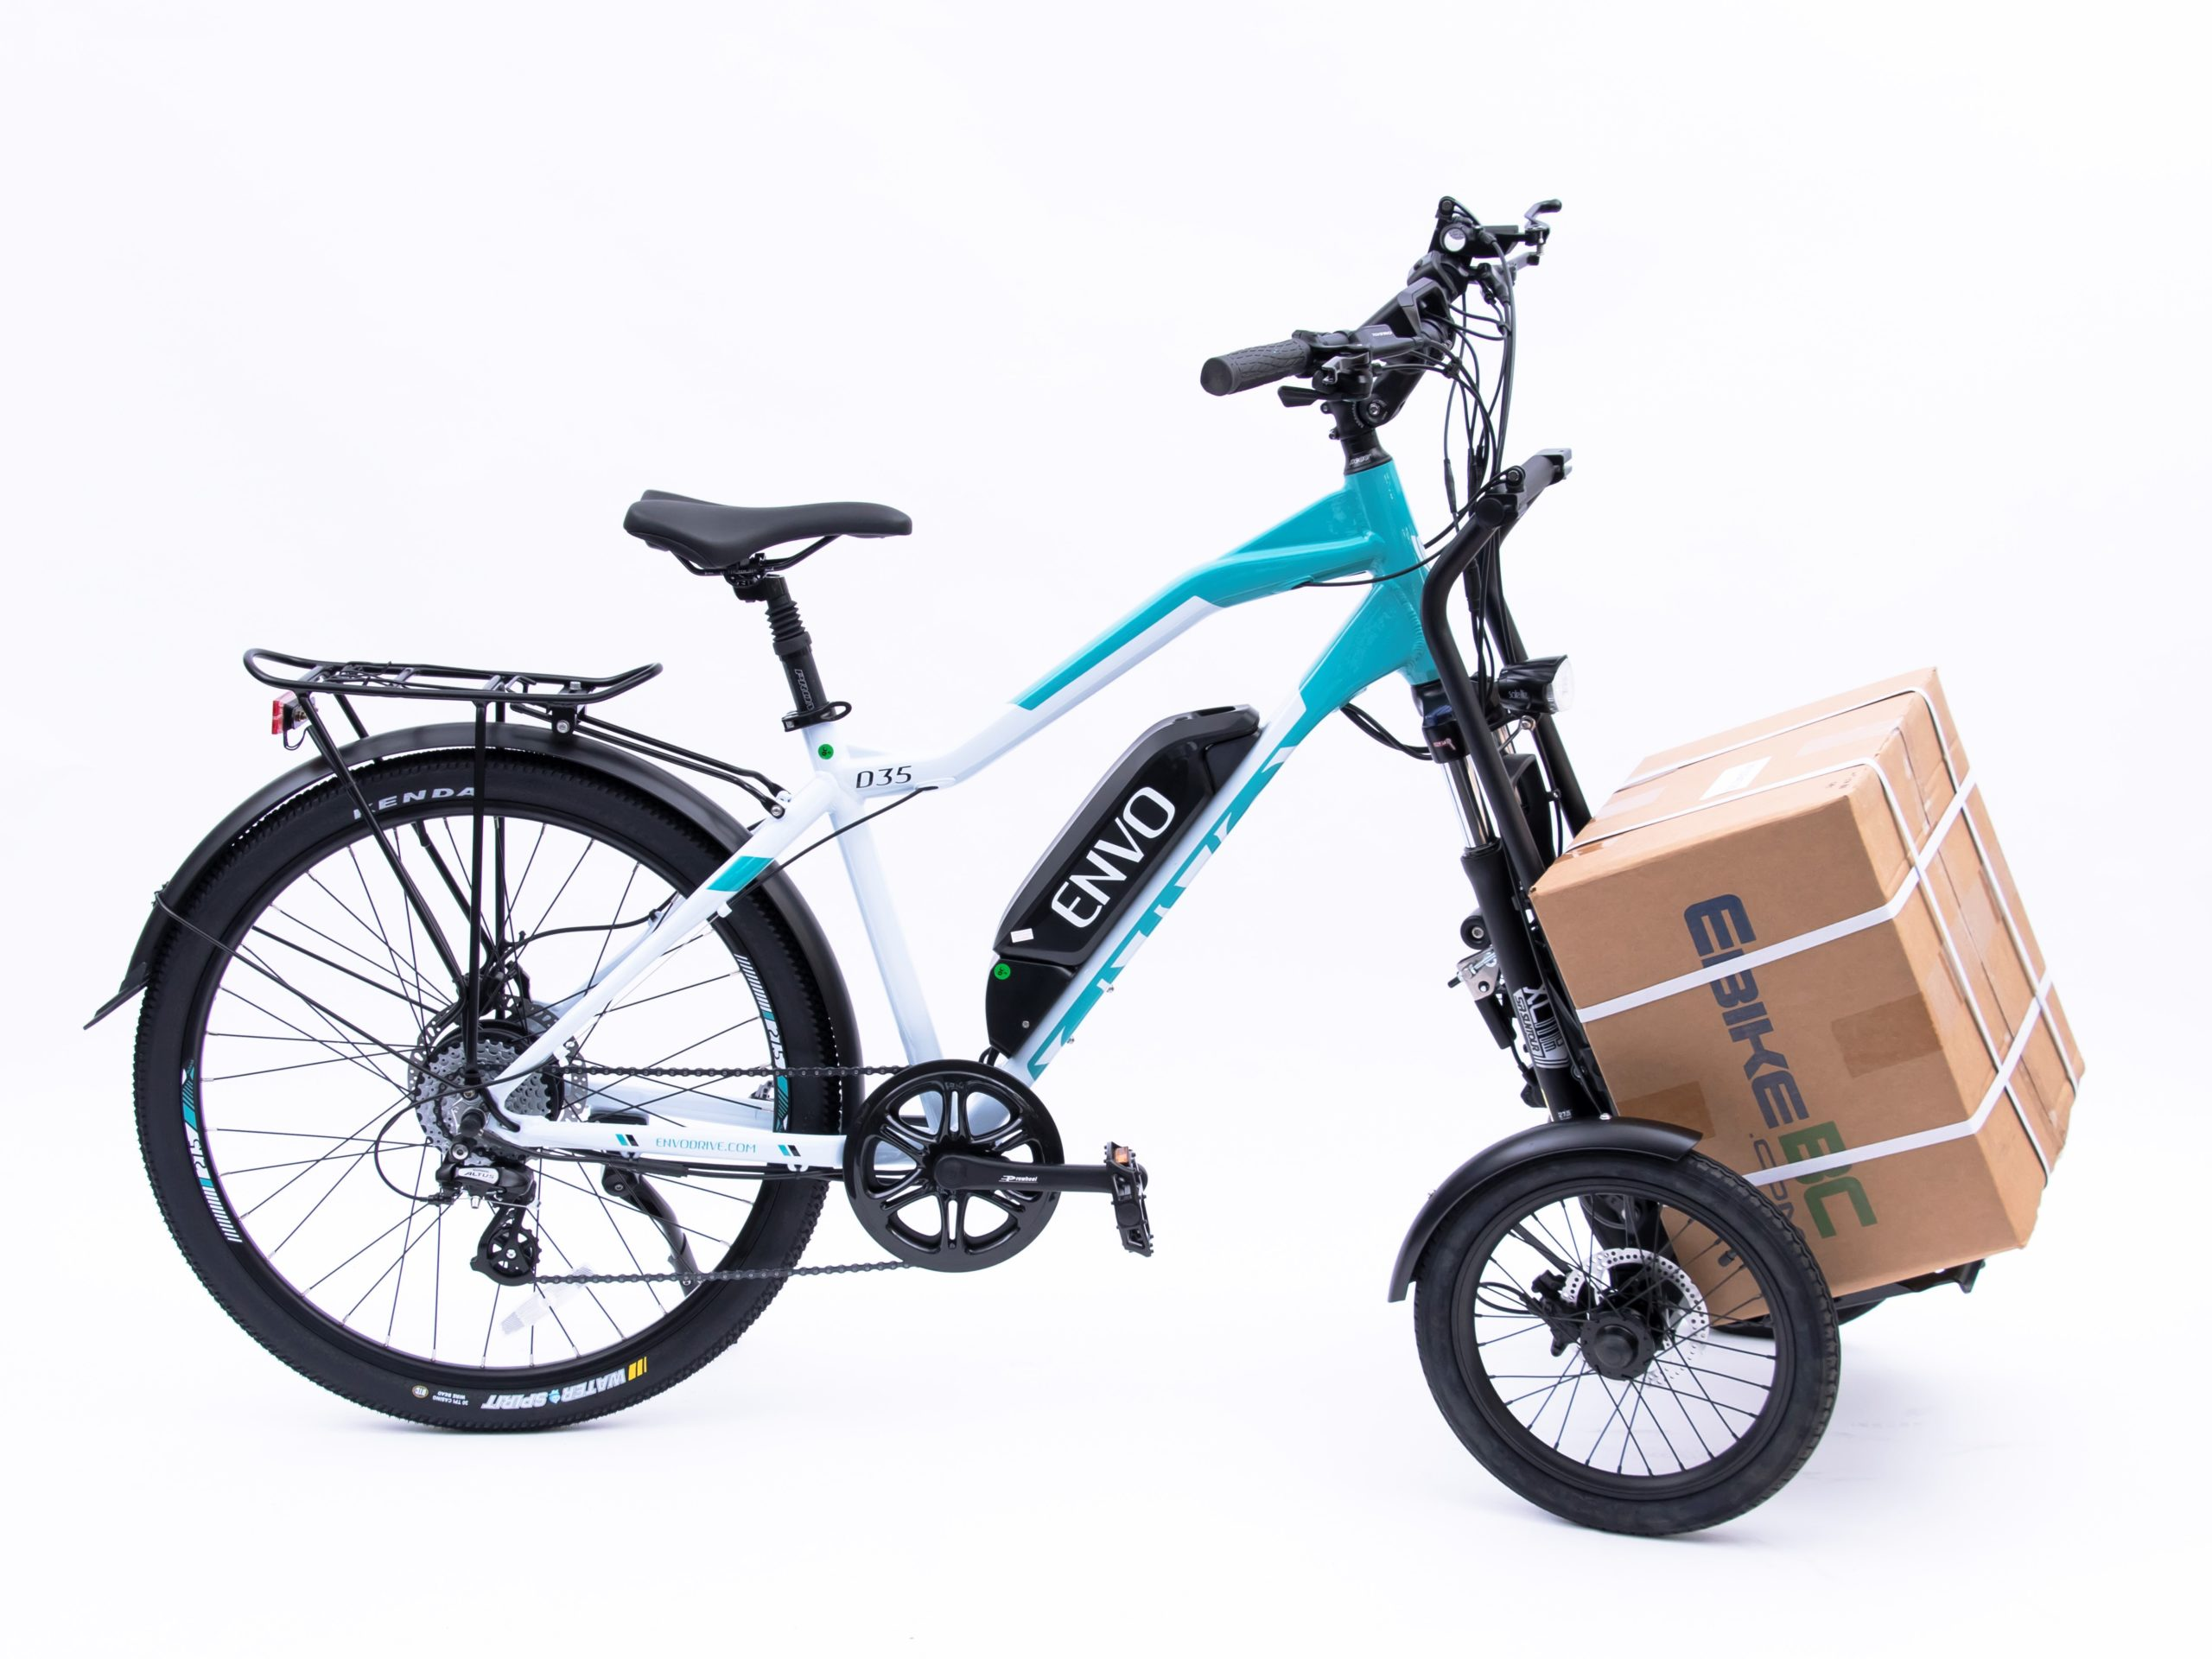 ENVO ebike with Trego cargo accessory